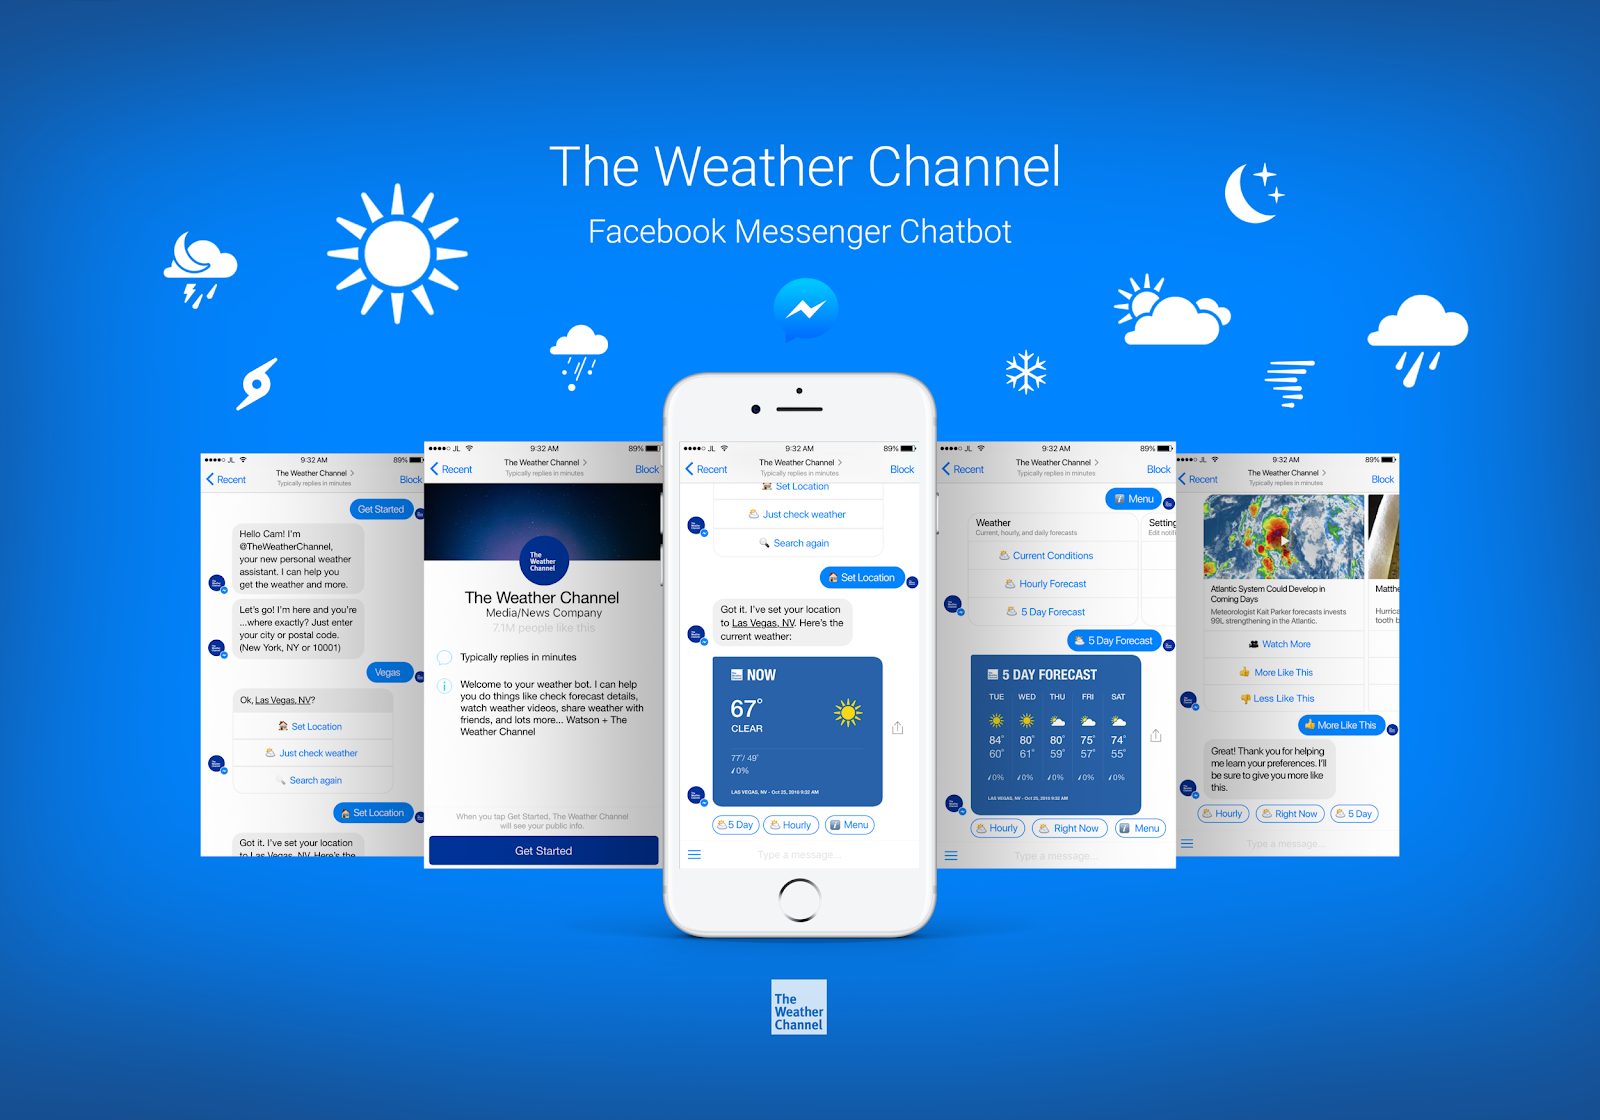 The Weather Channel Facebook Messenger chatbot design concept by Denise Francis.